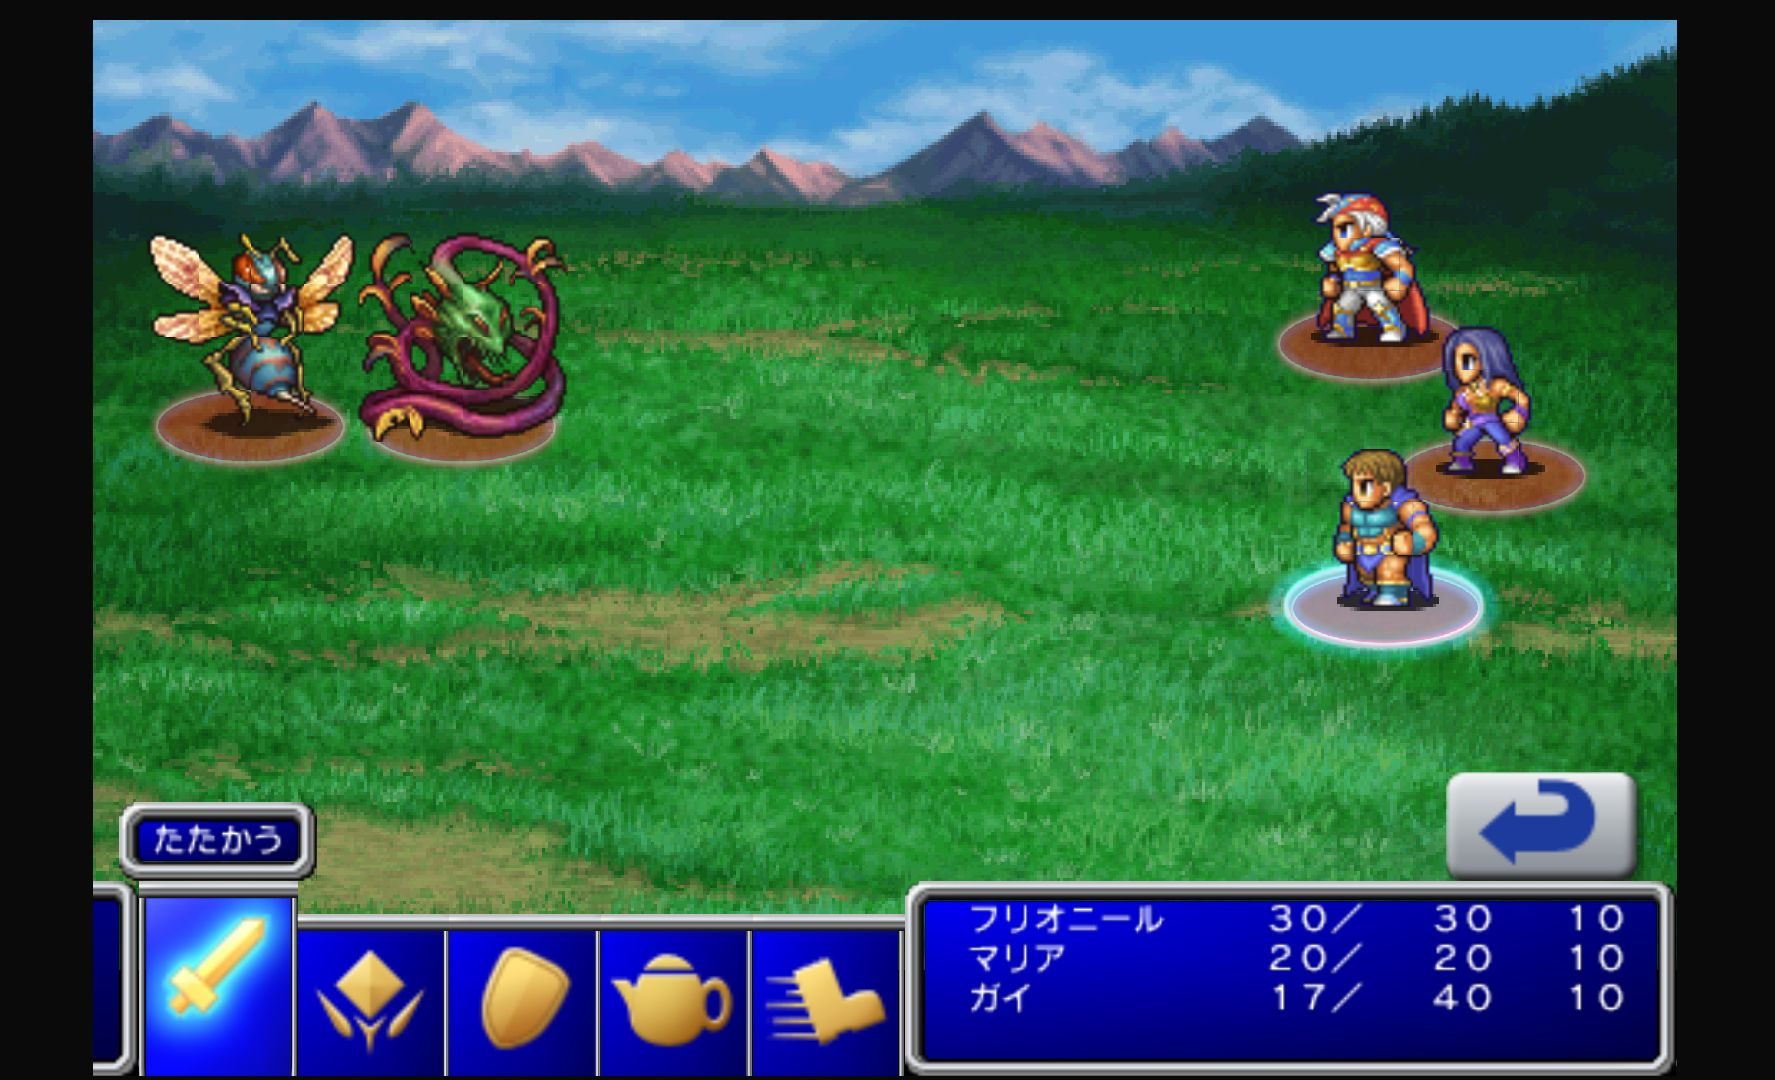 androidアプリ FINAL FANTASY II(FFポータル版)攻略スクリーンショット4